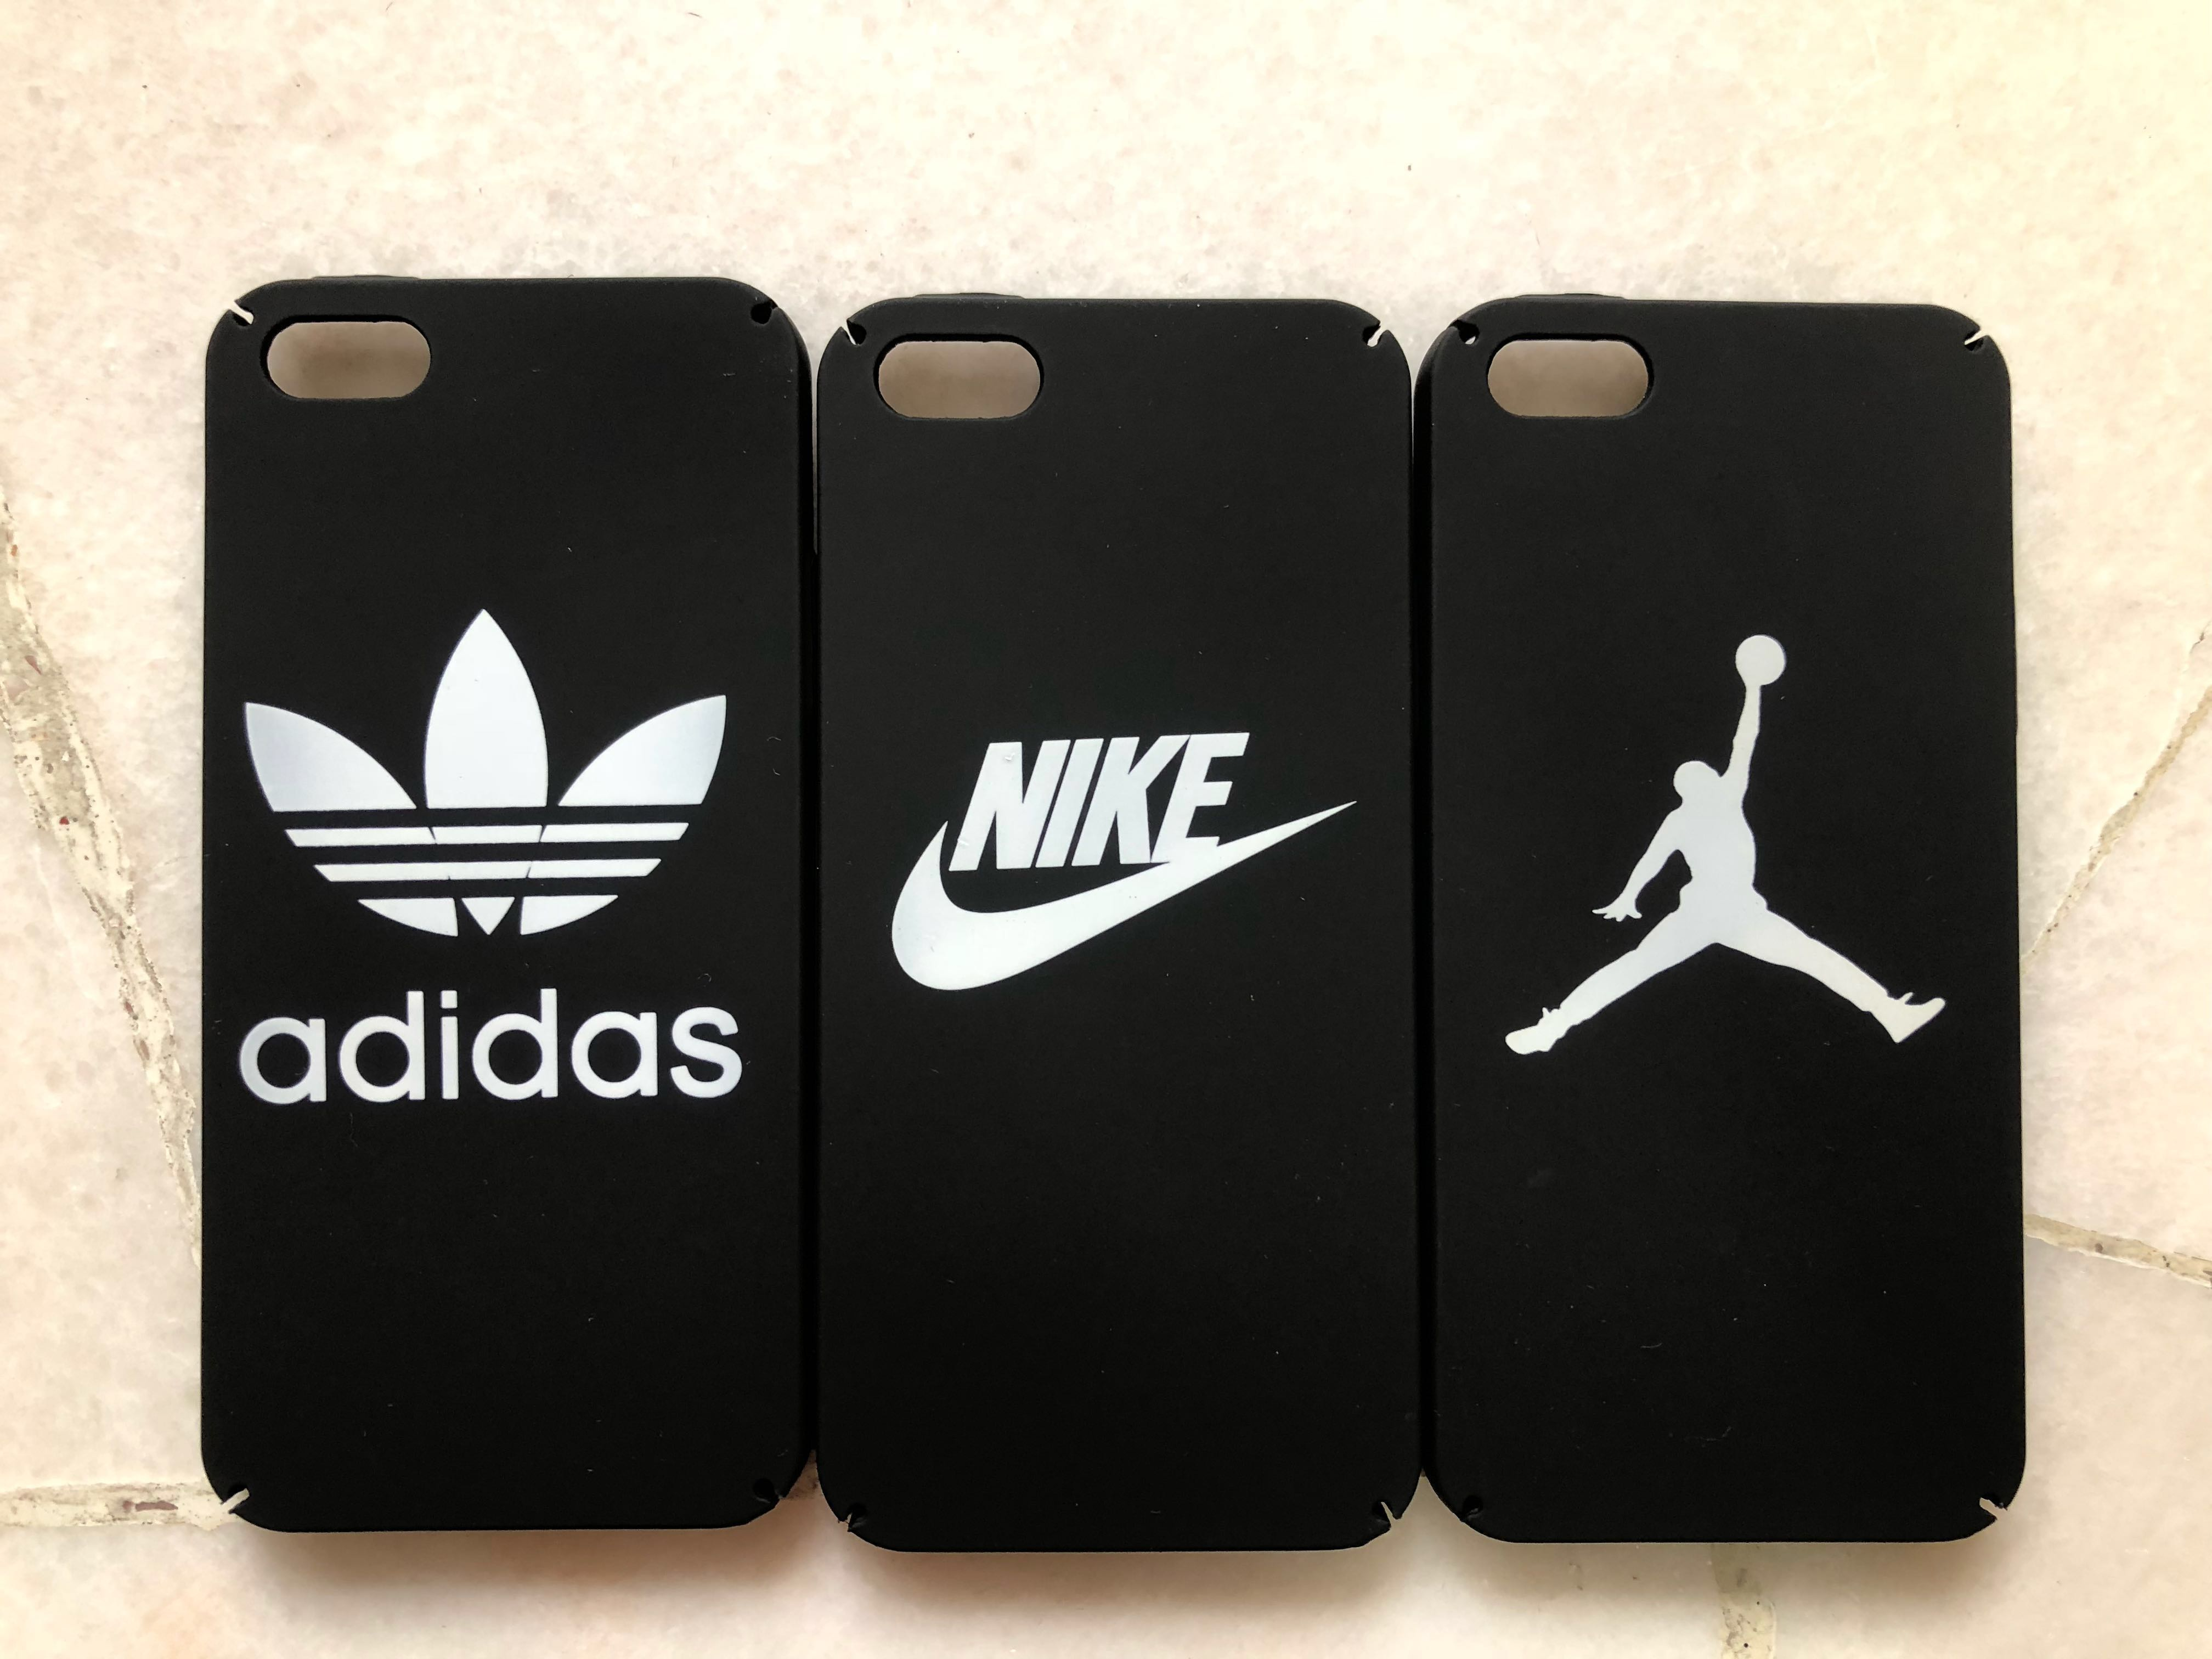 finest selection 0364c 11a92 [FREE📮] NIKE/ADIDAS IPHONE 5/5S/SE CASE